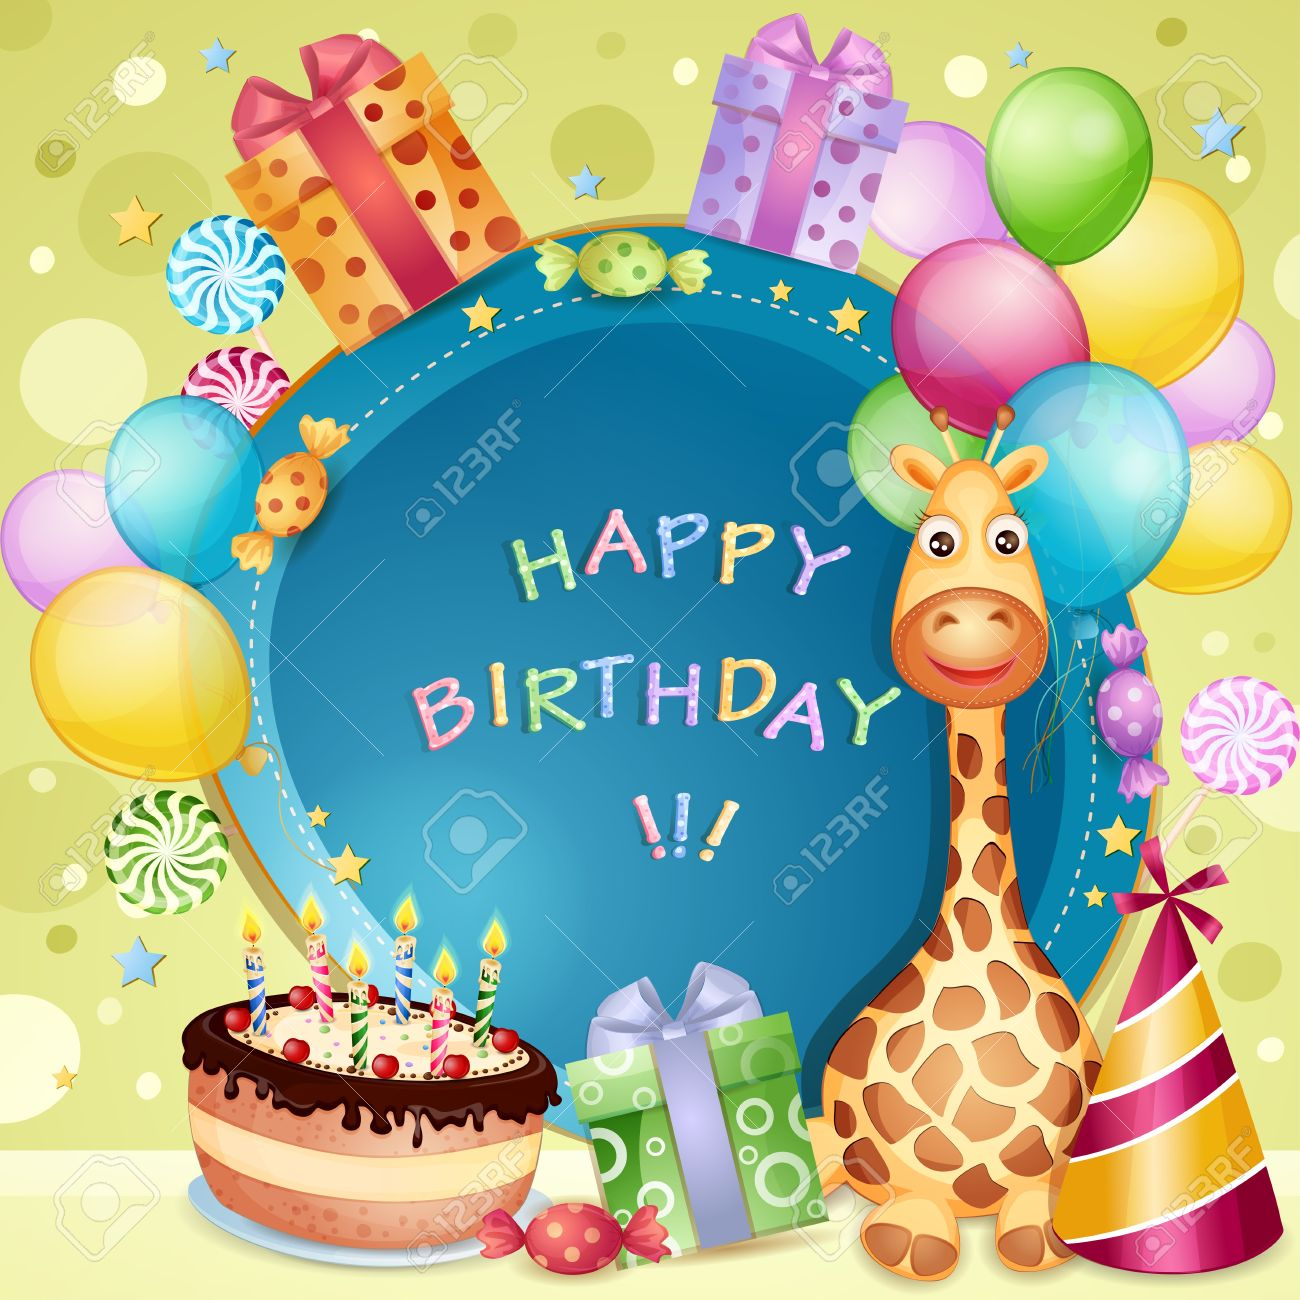 10 Best Happy Birthday Wishes, Images With Quotes